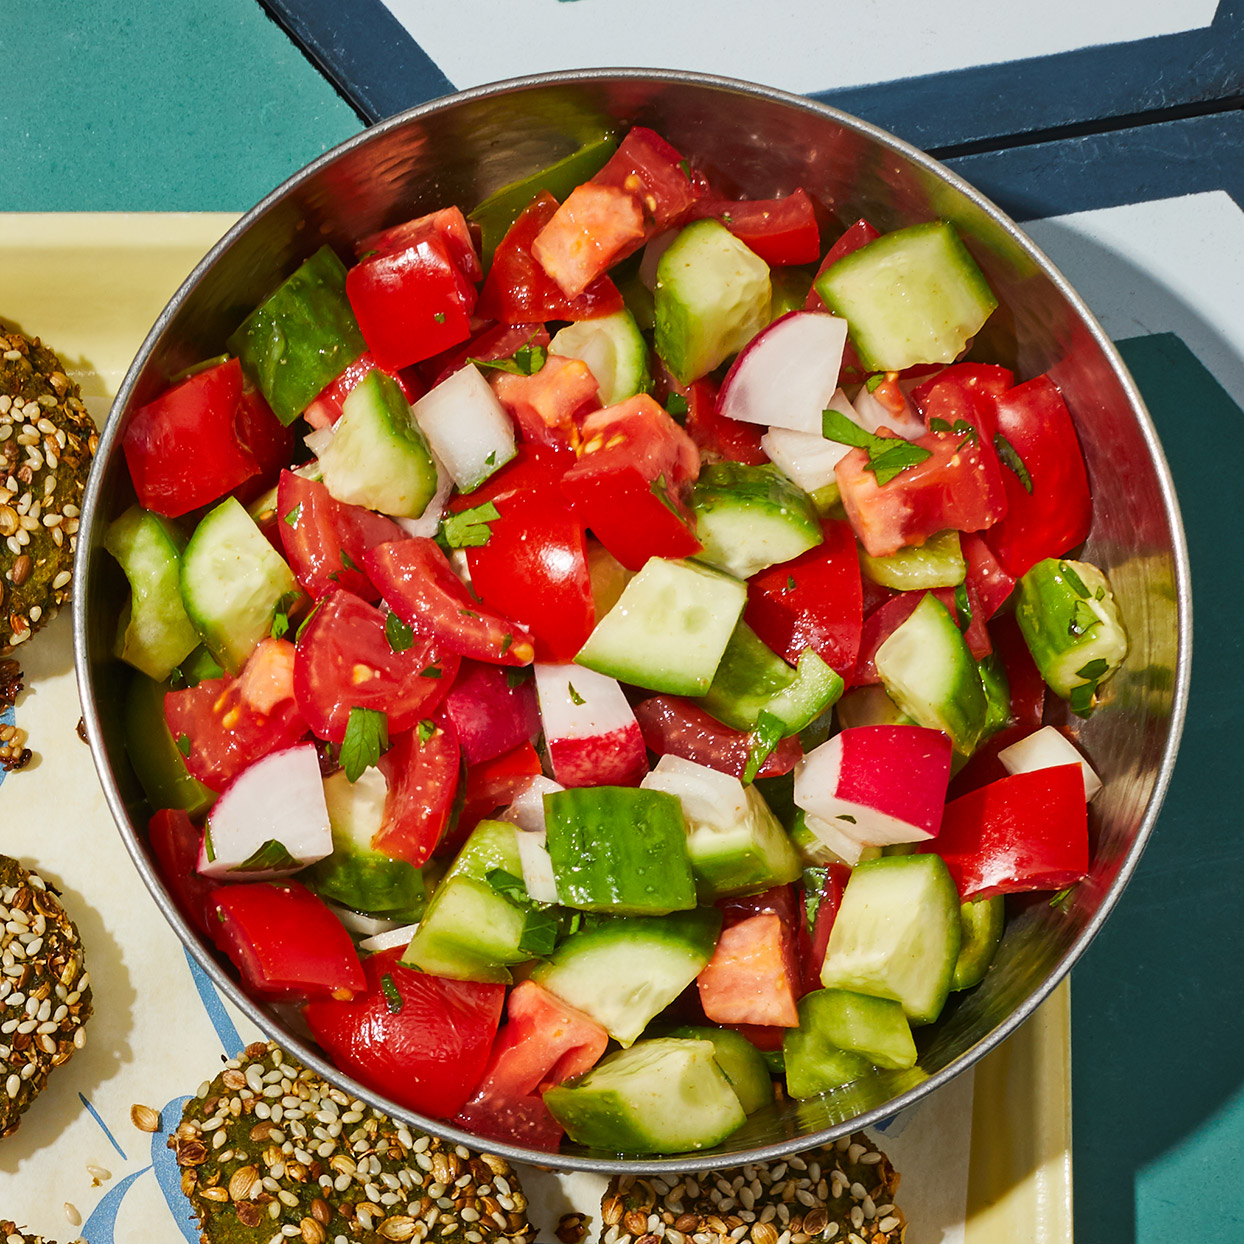 colorful tossed salad in a bowl